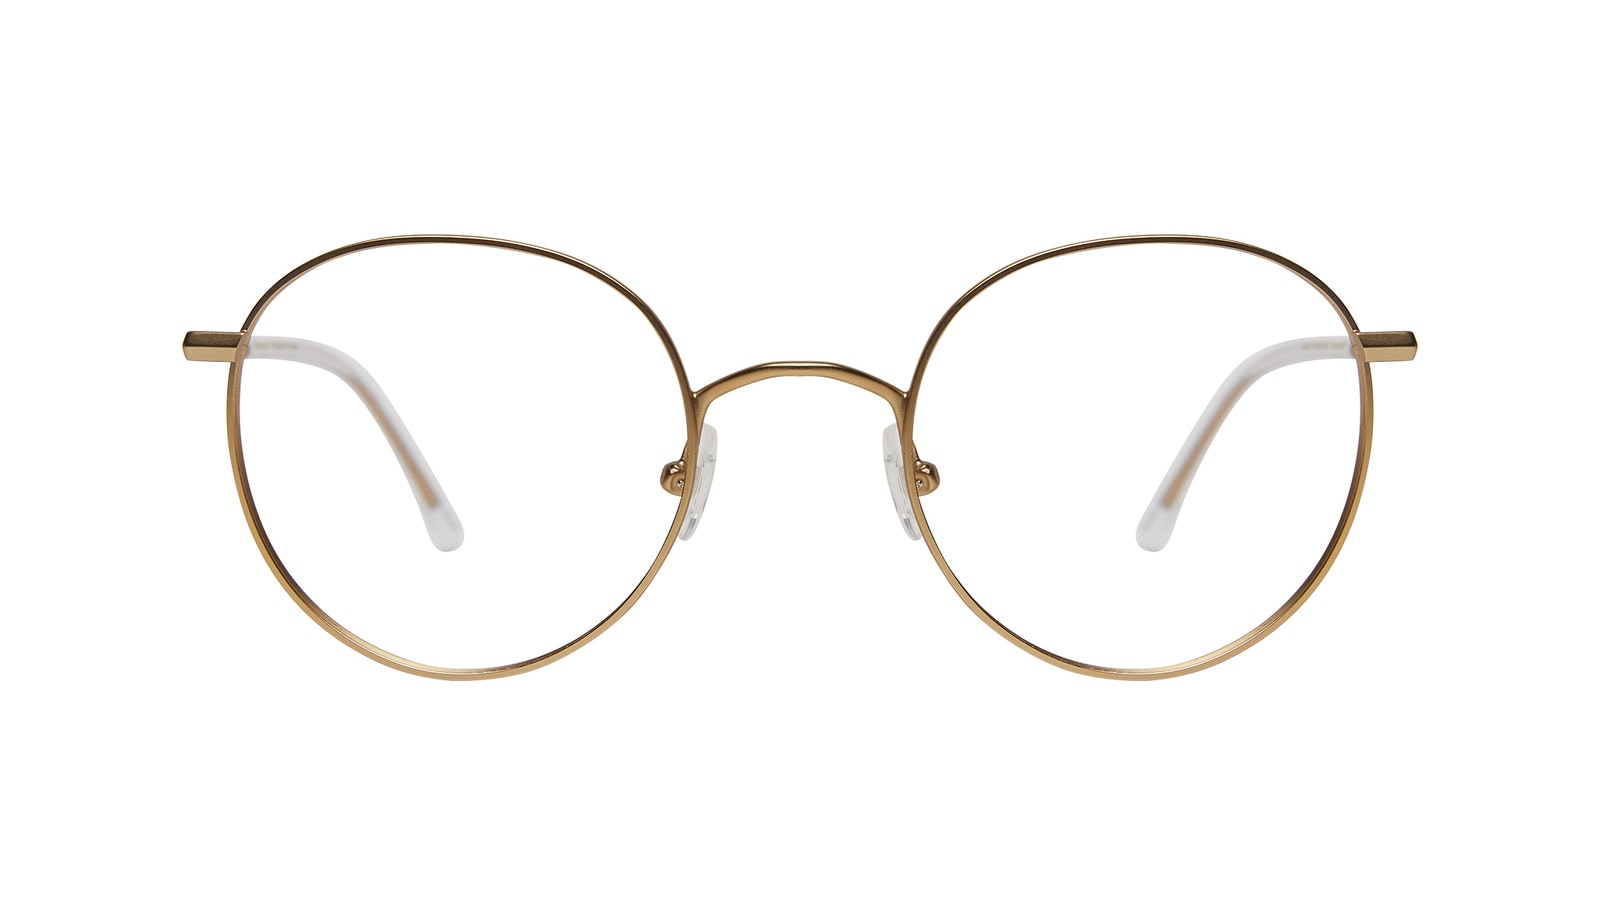 Affordable Fashion Glasses Round Eyeglasses Women Finesse Matte Gold